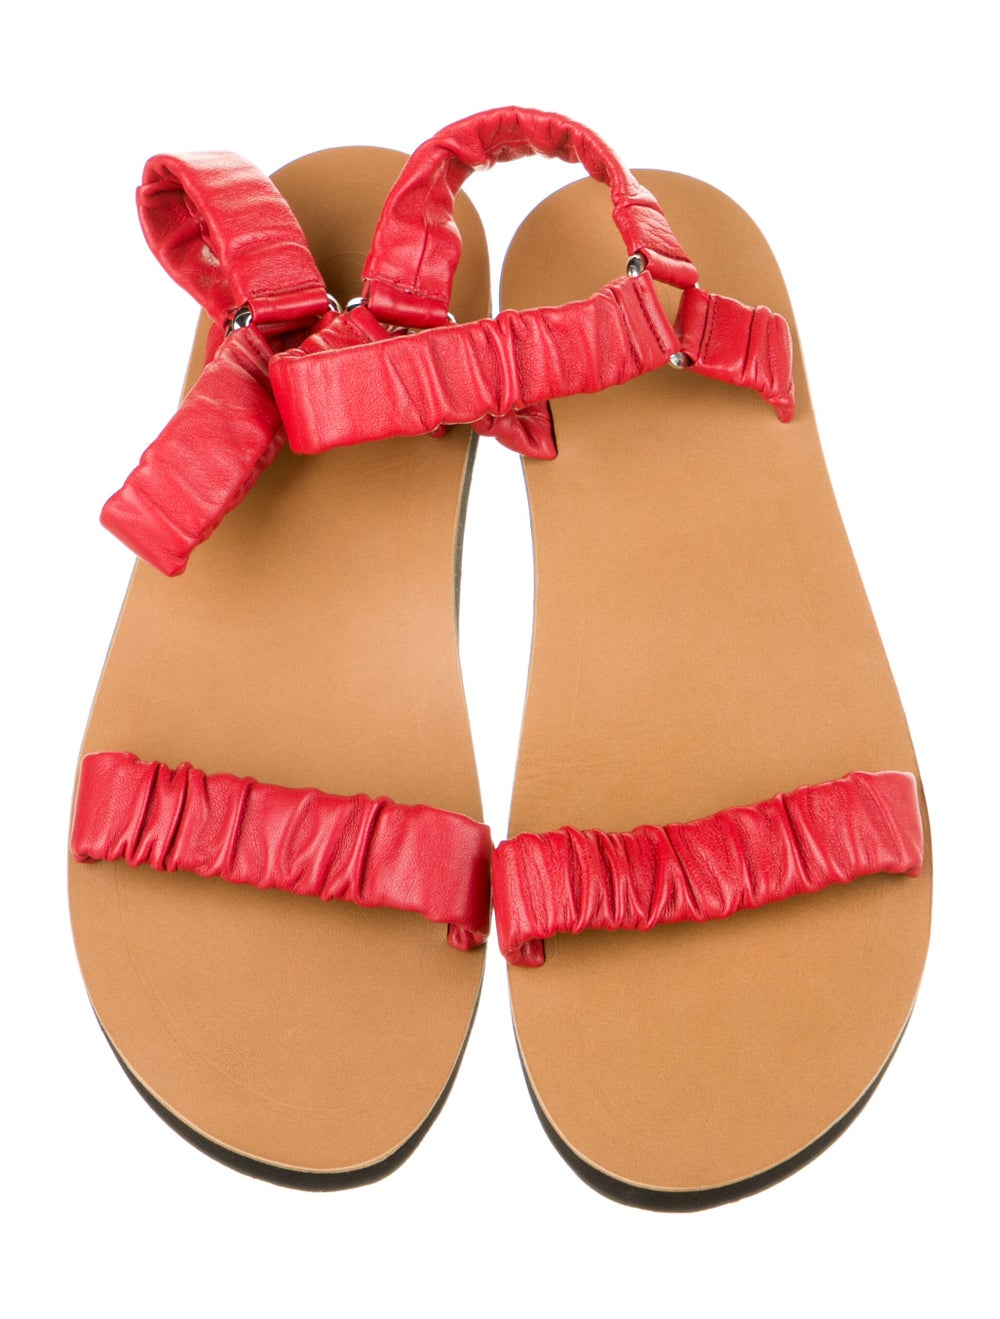 The Row Leather Sandals Red - image 3